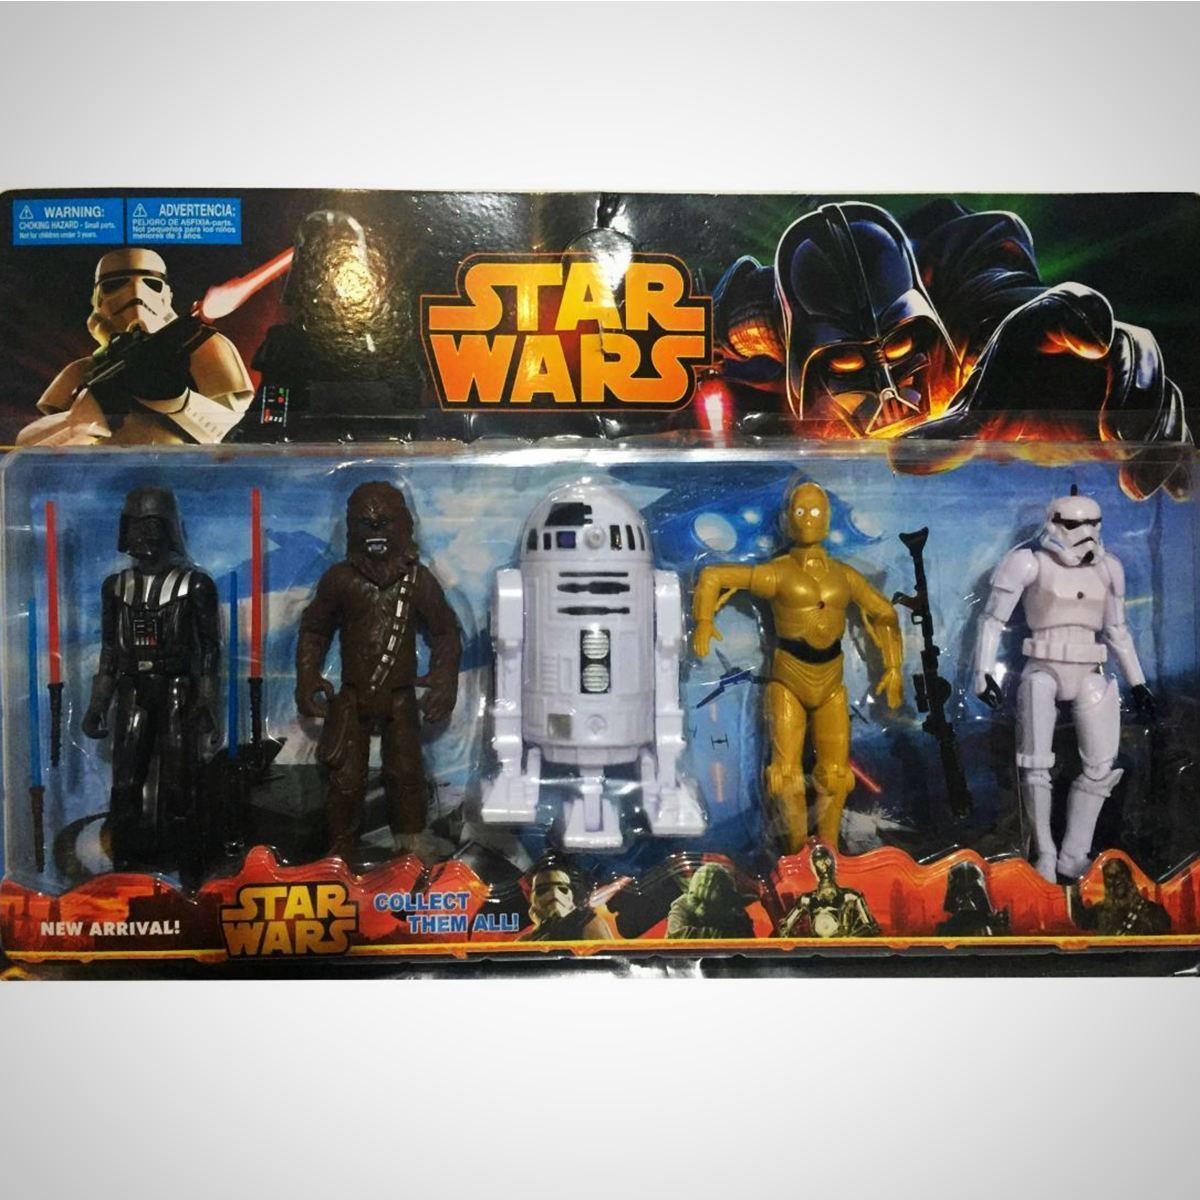 Coleção Star Wars - 5 Personagens - - Action Figures C3Po Cartela Darth Vader Disney My Geek Stock